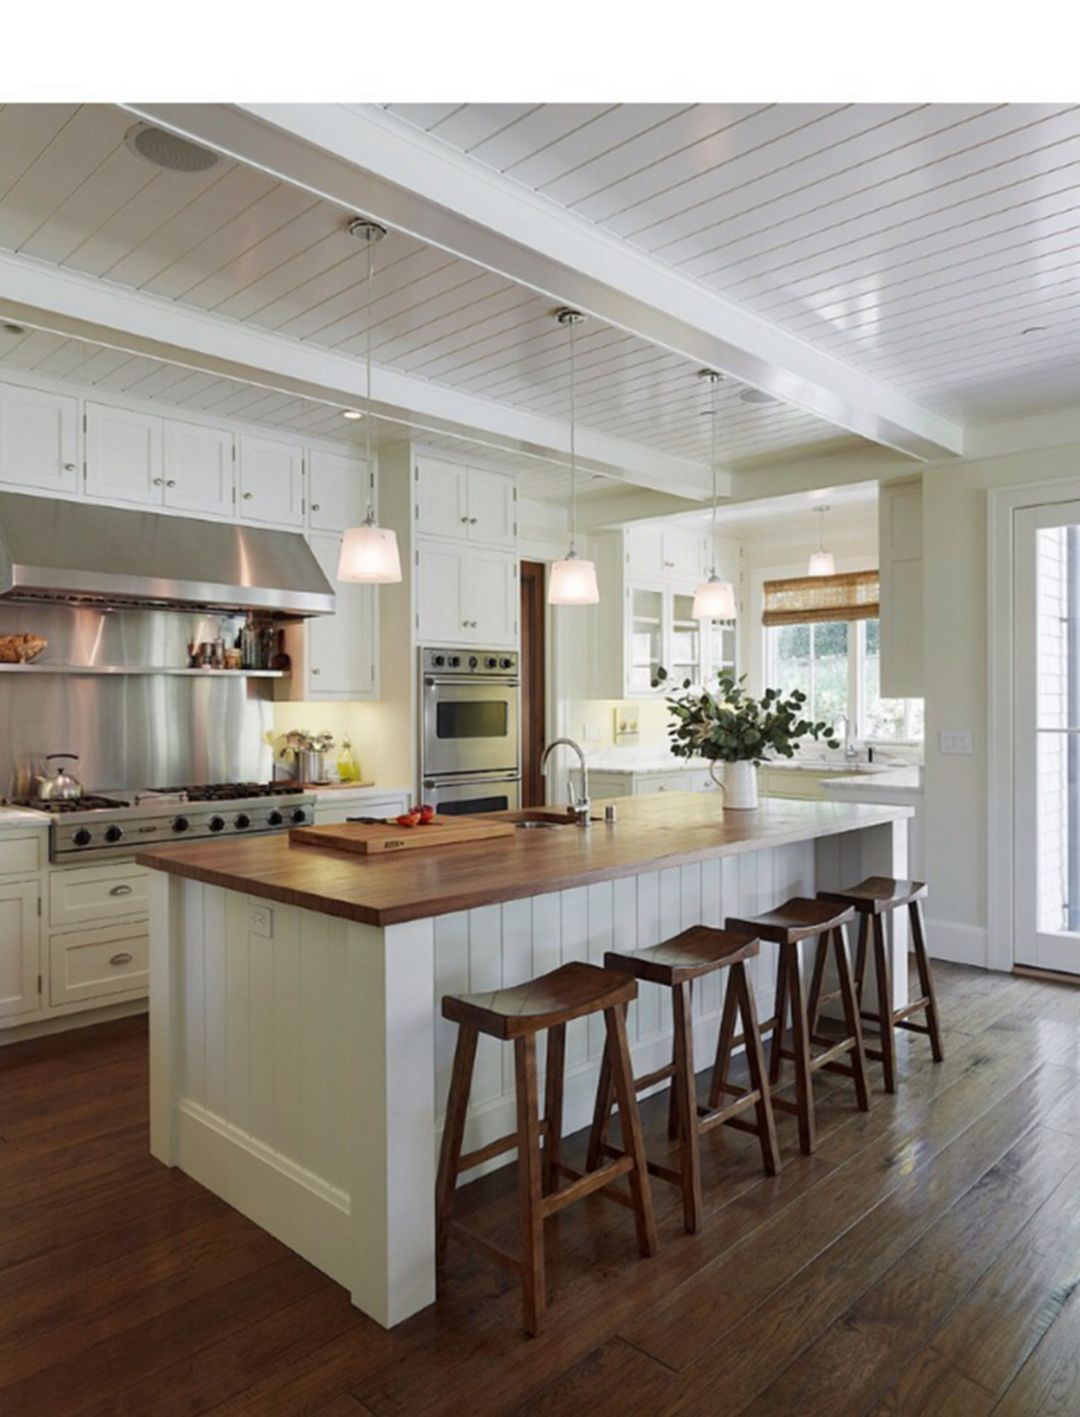 Marvelous incredible wooden kitchen floor and countertop ideas on